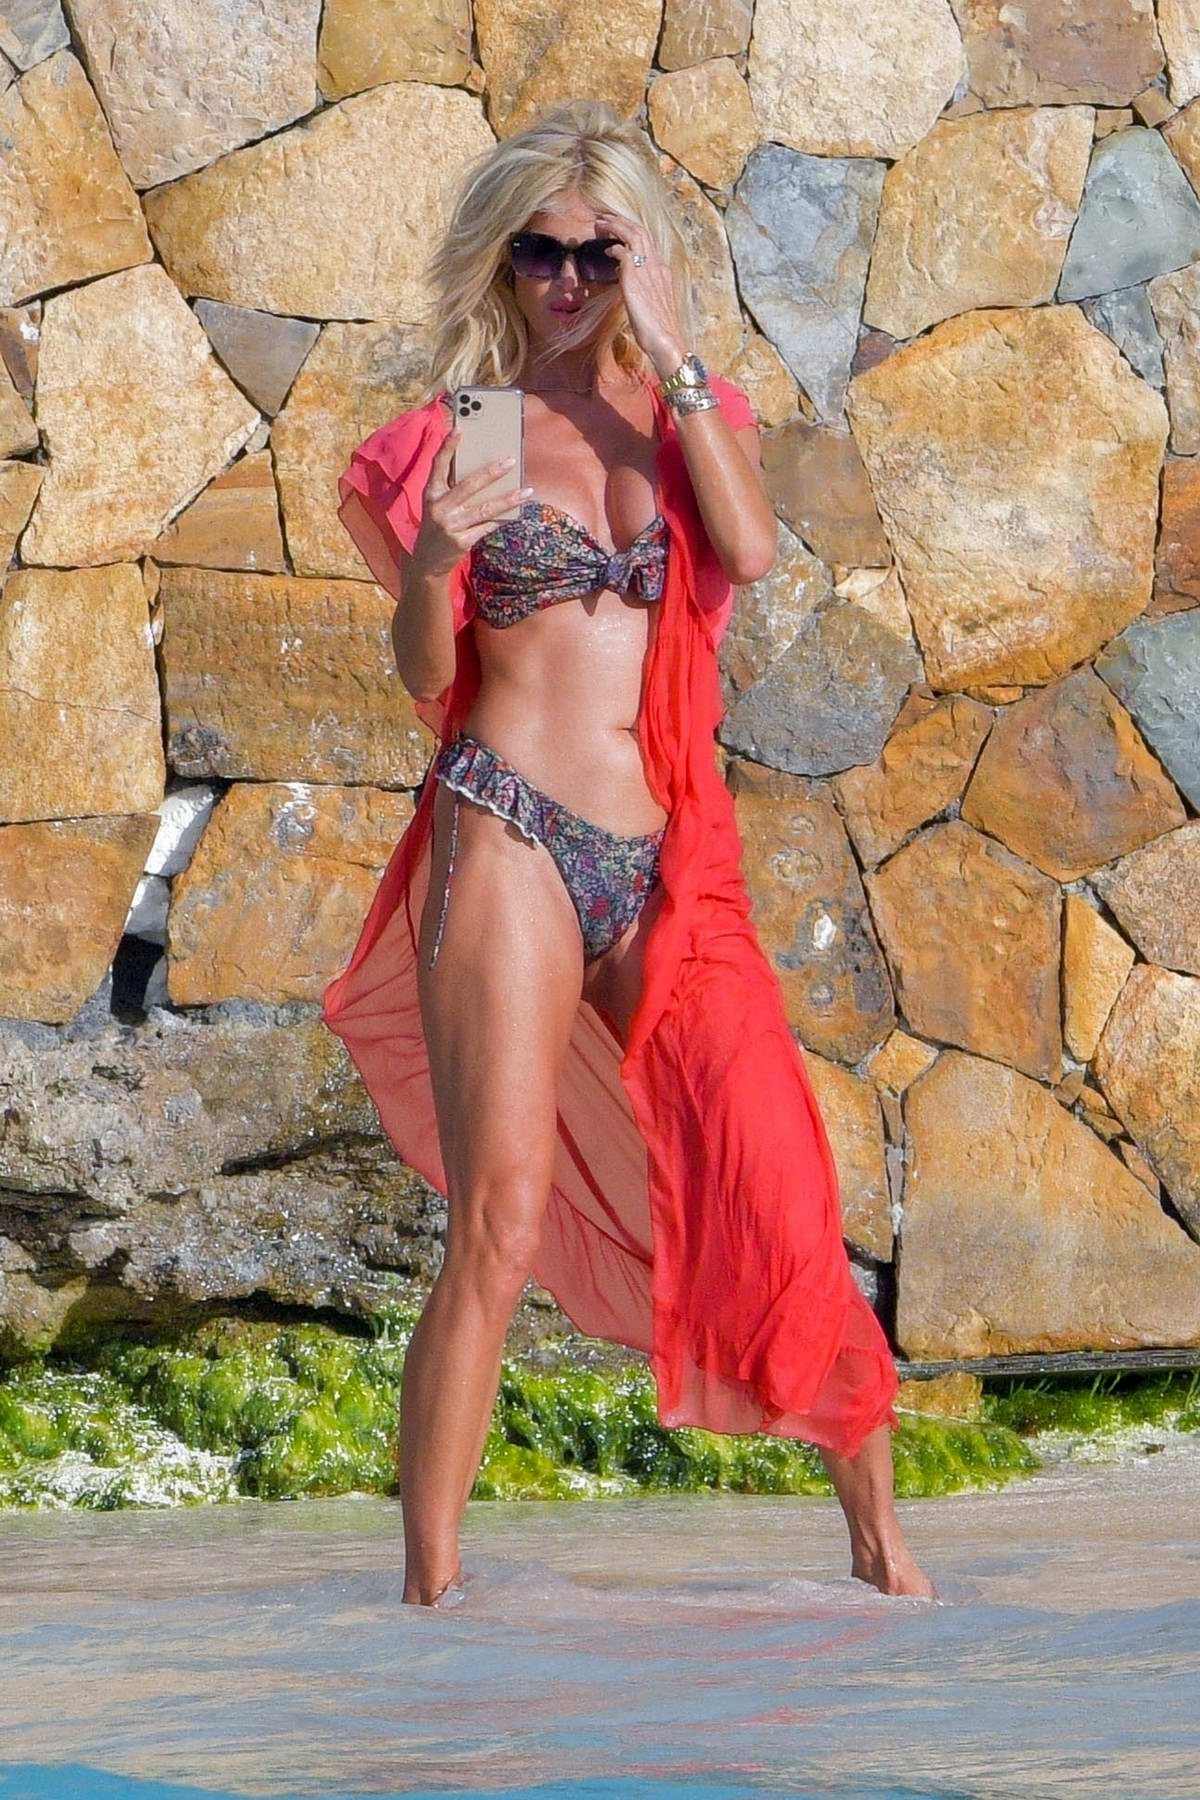 Victoria Slivested flaunts her bronzed figure in a bikini at the beach in St Barts, France